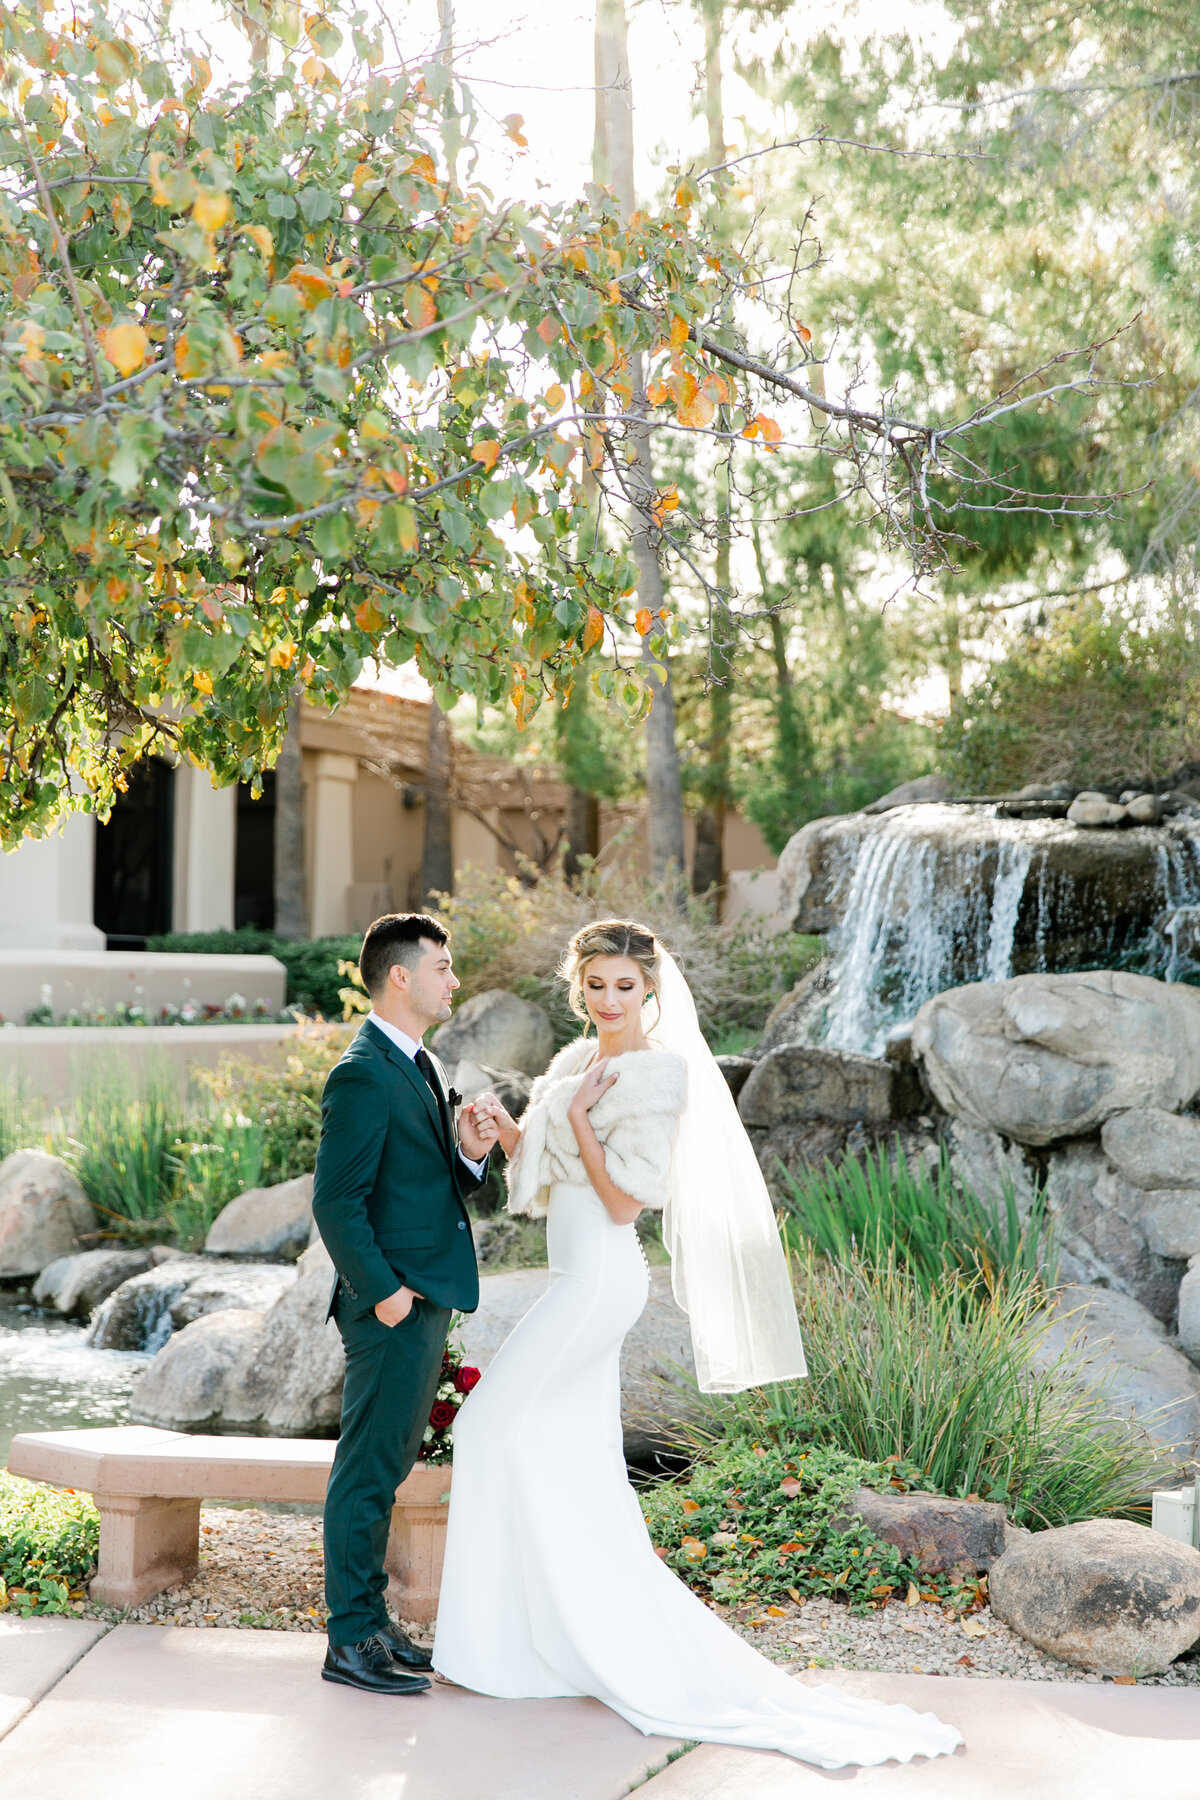 Karlie Colleen Photography - Gilbert Arizona Wedding - Val Vista Lakes - Brynne & Josh-477